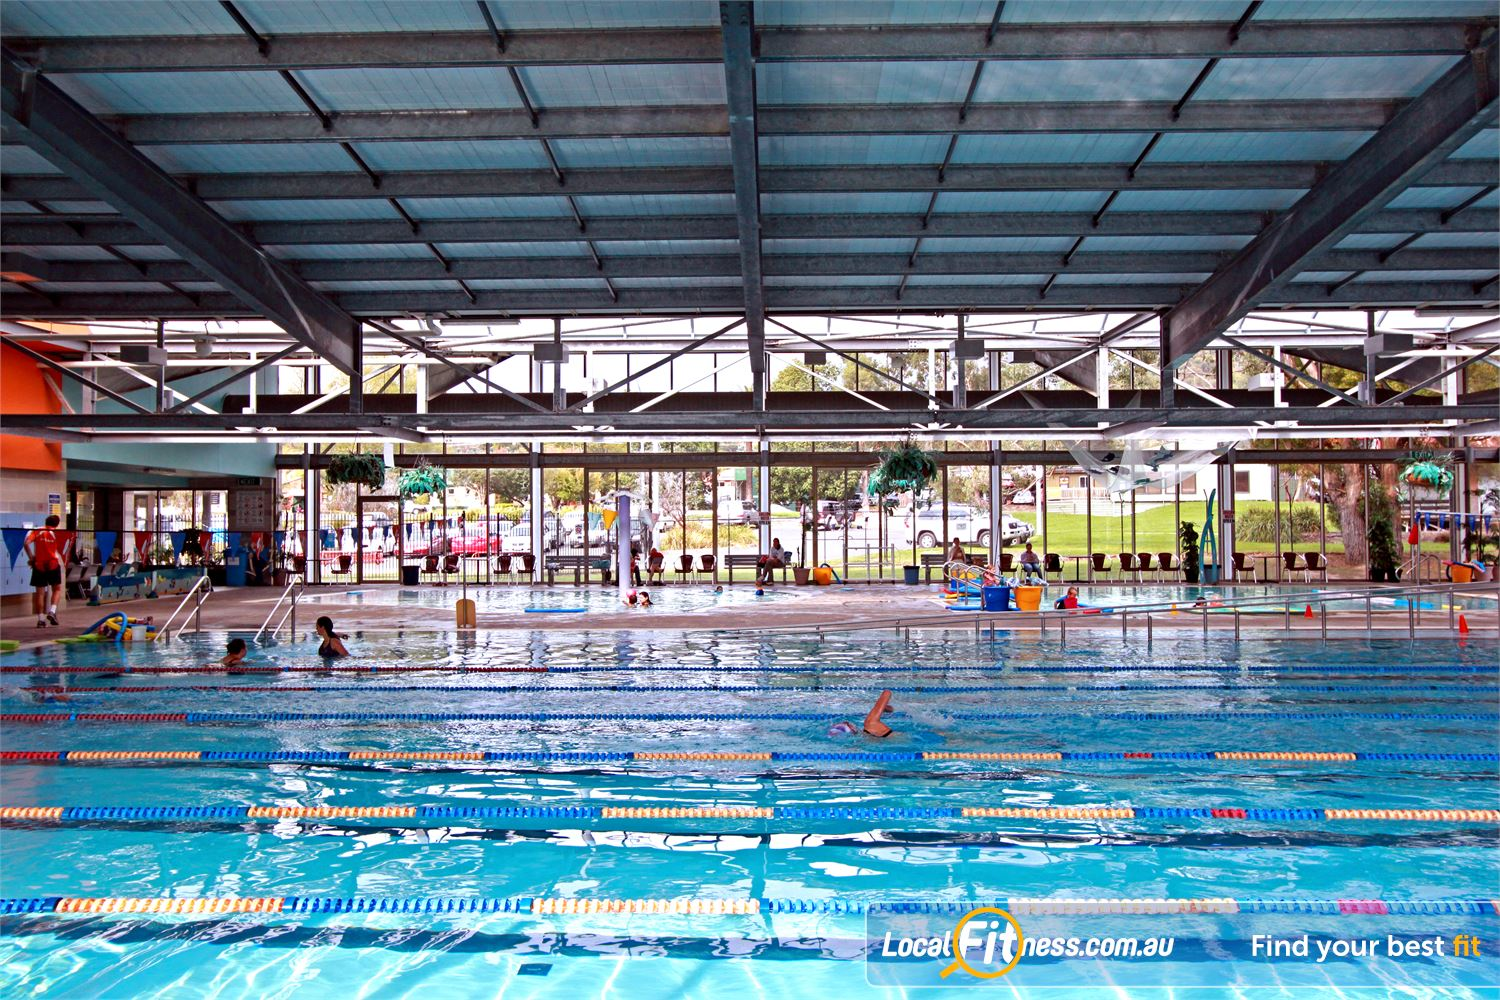 Yarra Recreation Centre Near Warburton Our indoor swimming pool is heated all year round.